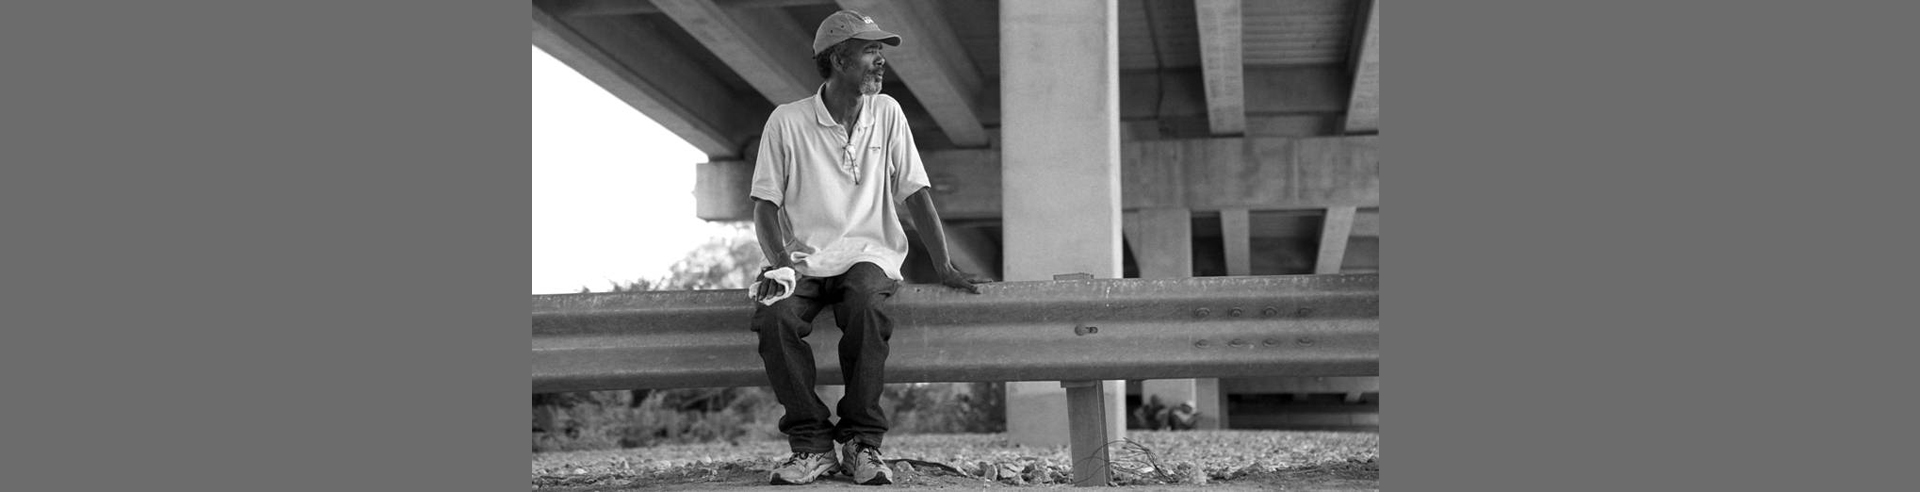 Man sitting under bridge